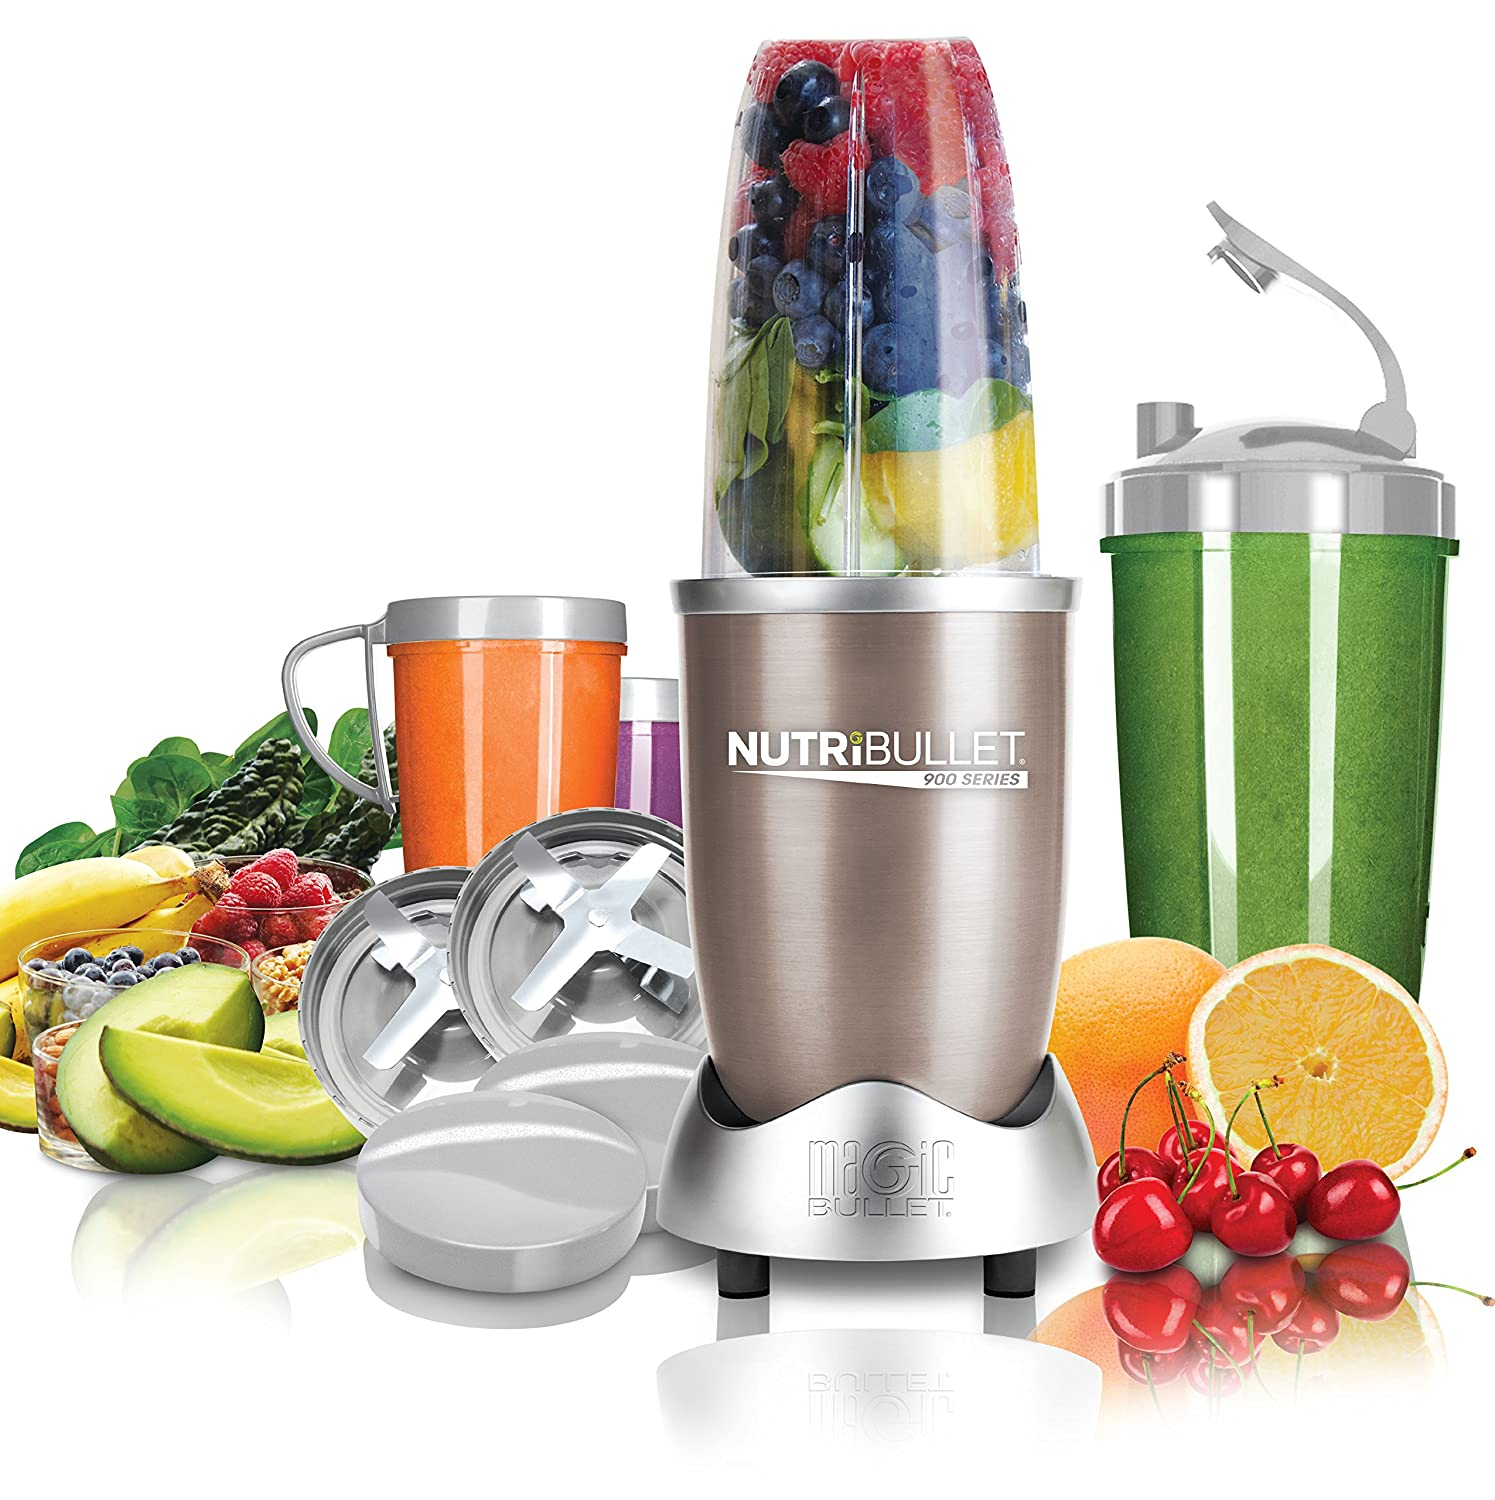 NUTRiBULLET Pro 900 Series Extractor 15 Piece Set